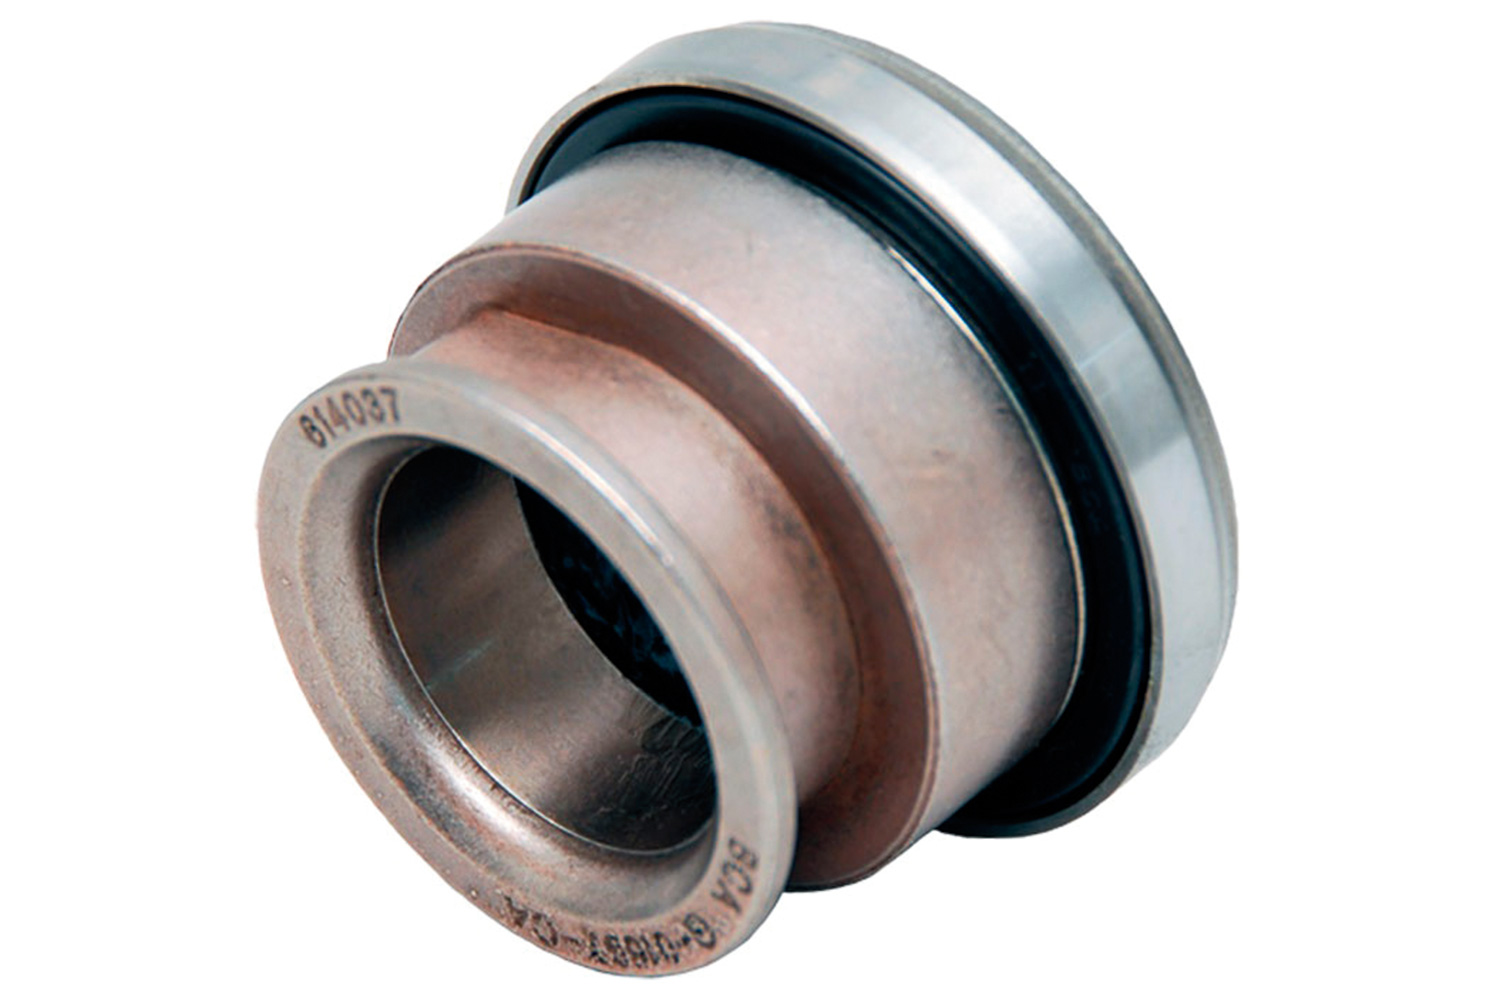 [05] Throwout bearings are the link between the pressure plate and the clutch pedal. This particular throwout bearing is a non-hydraulic style bearing that requires a clutch fork and slave cylinder to work.